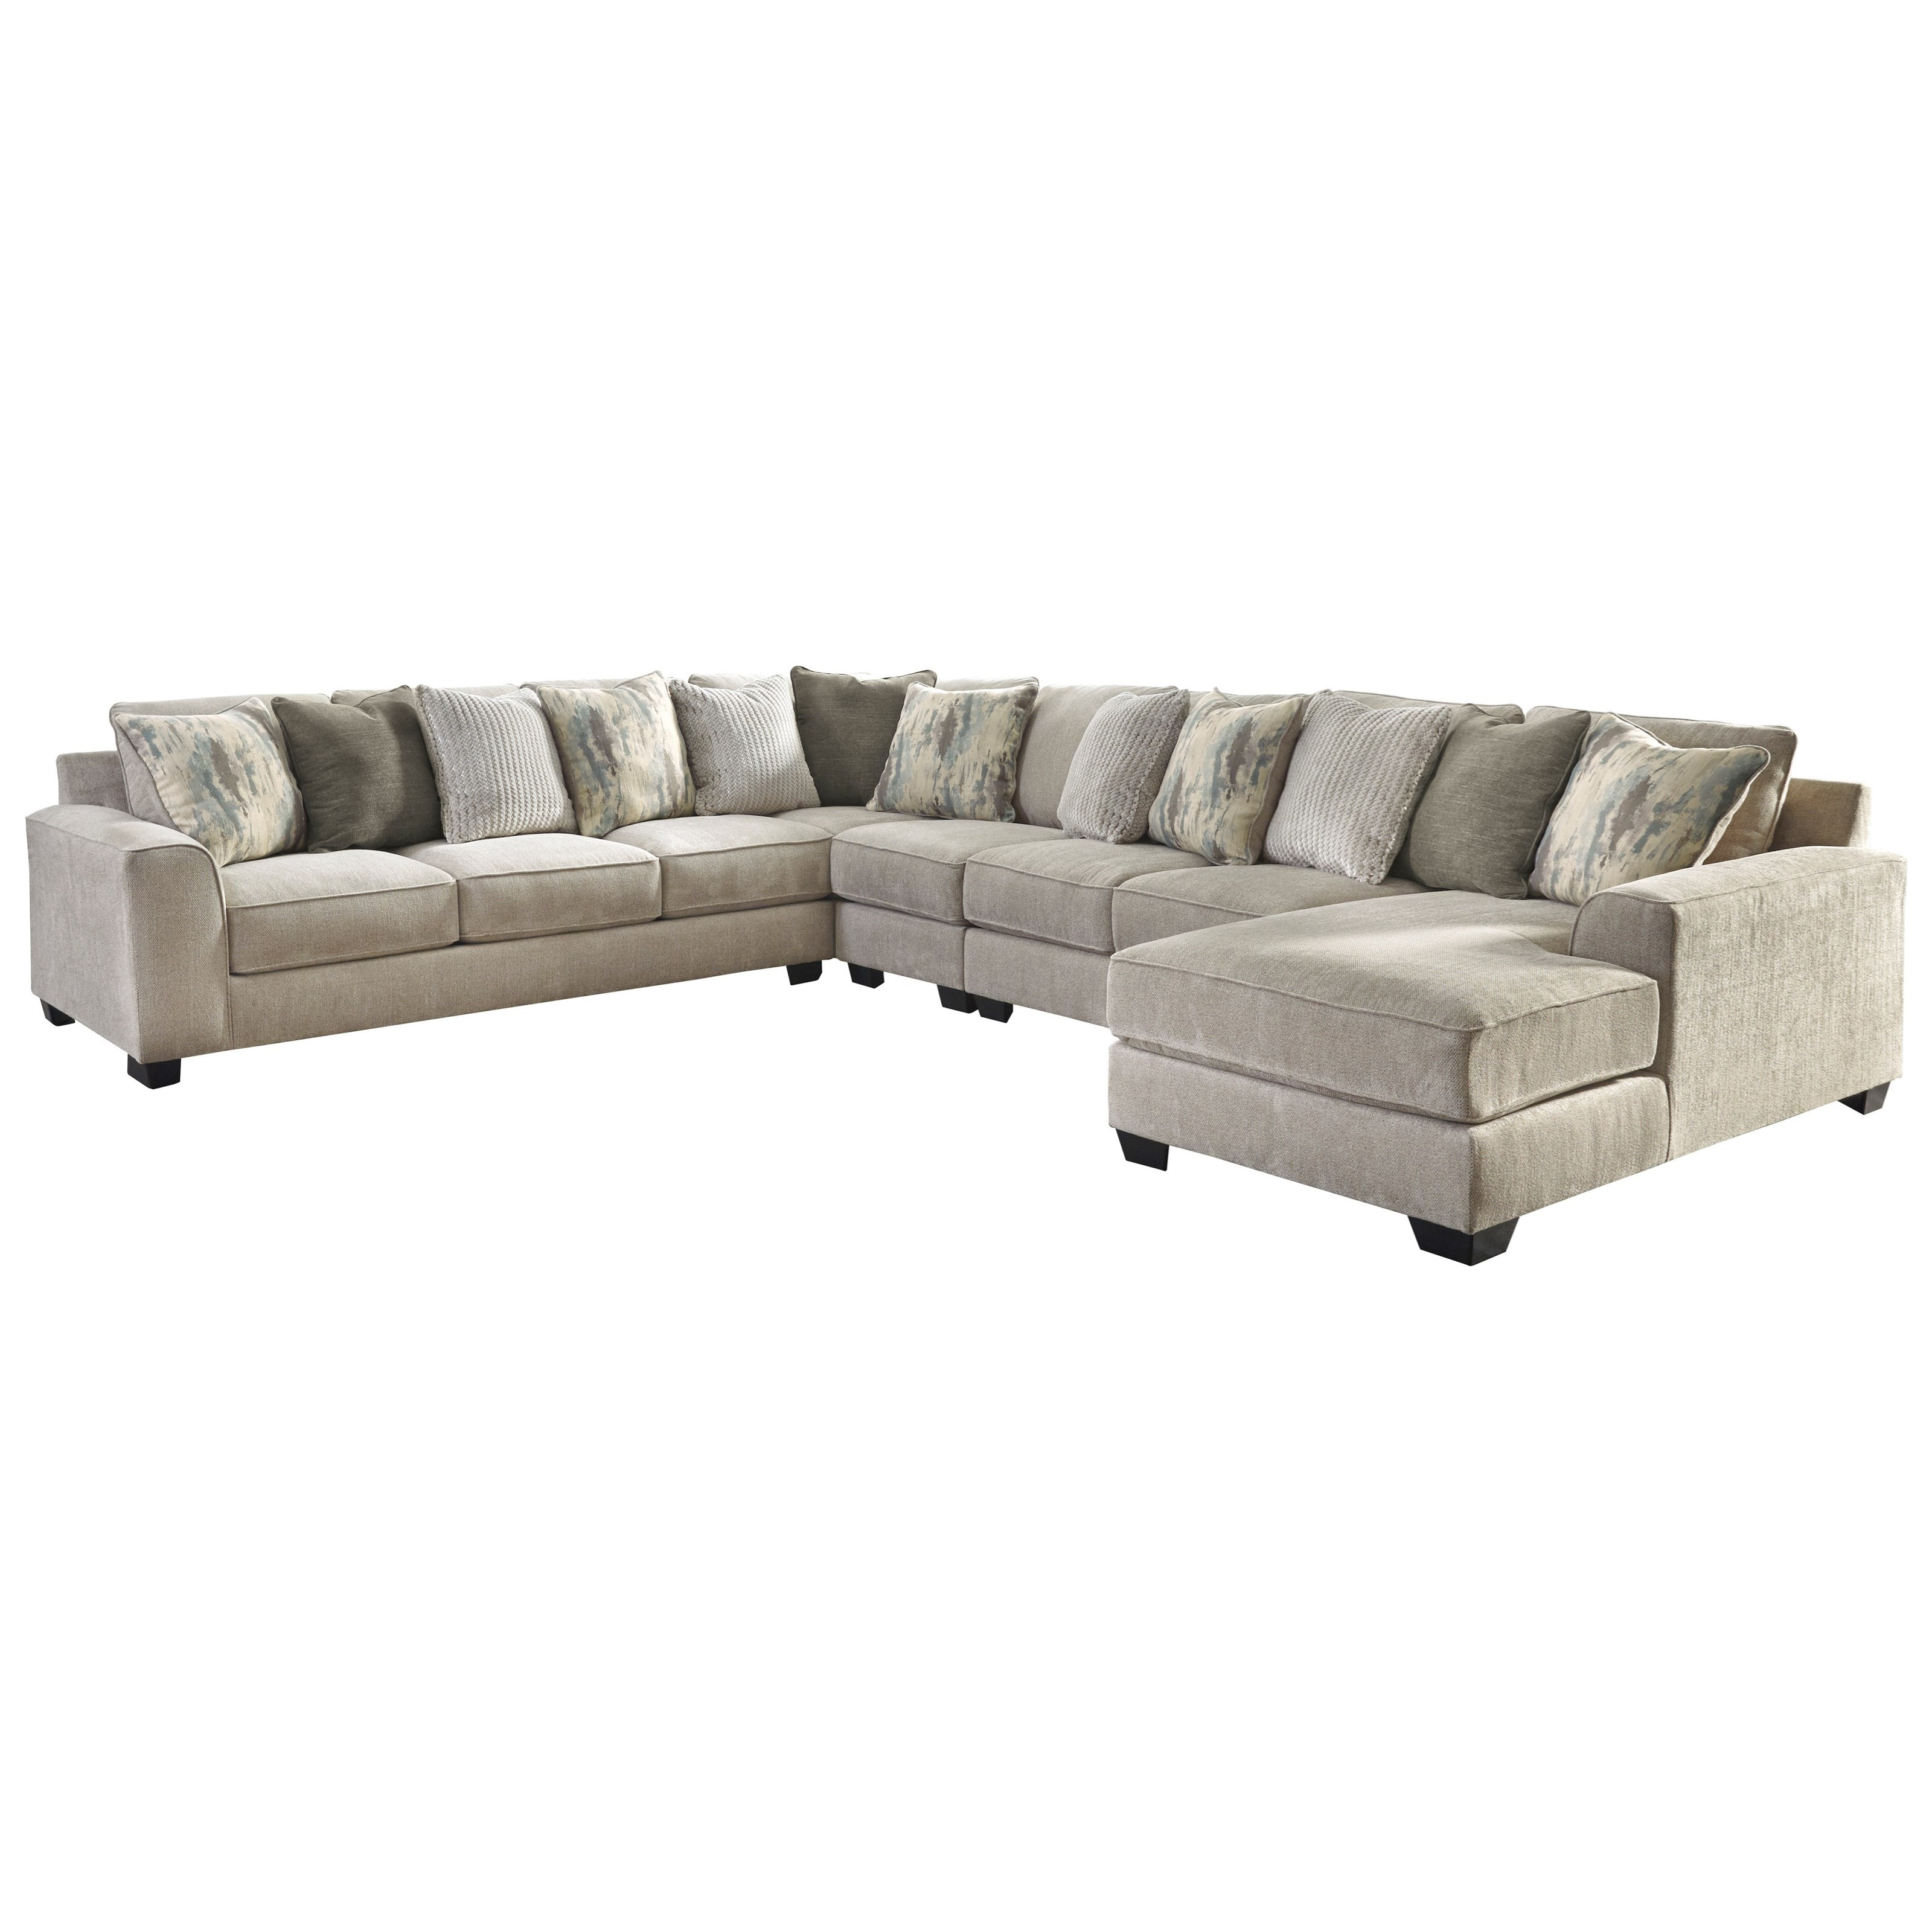 Ardsley 5-Piece Sectional with Right Chaise by Benchcraft at Lapeer Furniture & Mattress Center